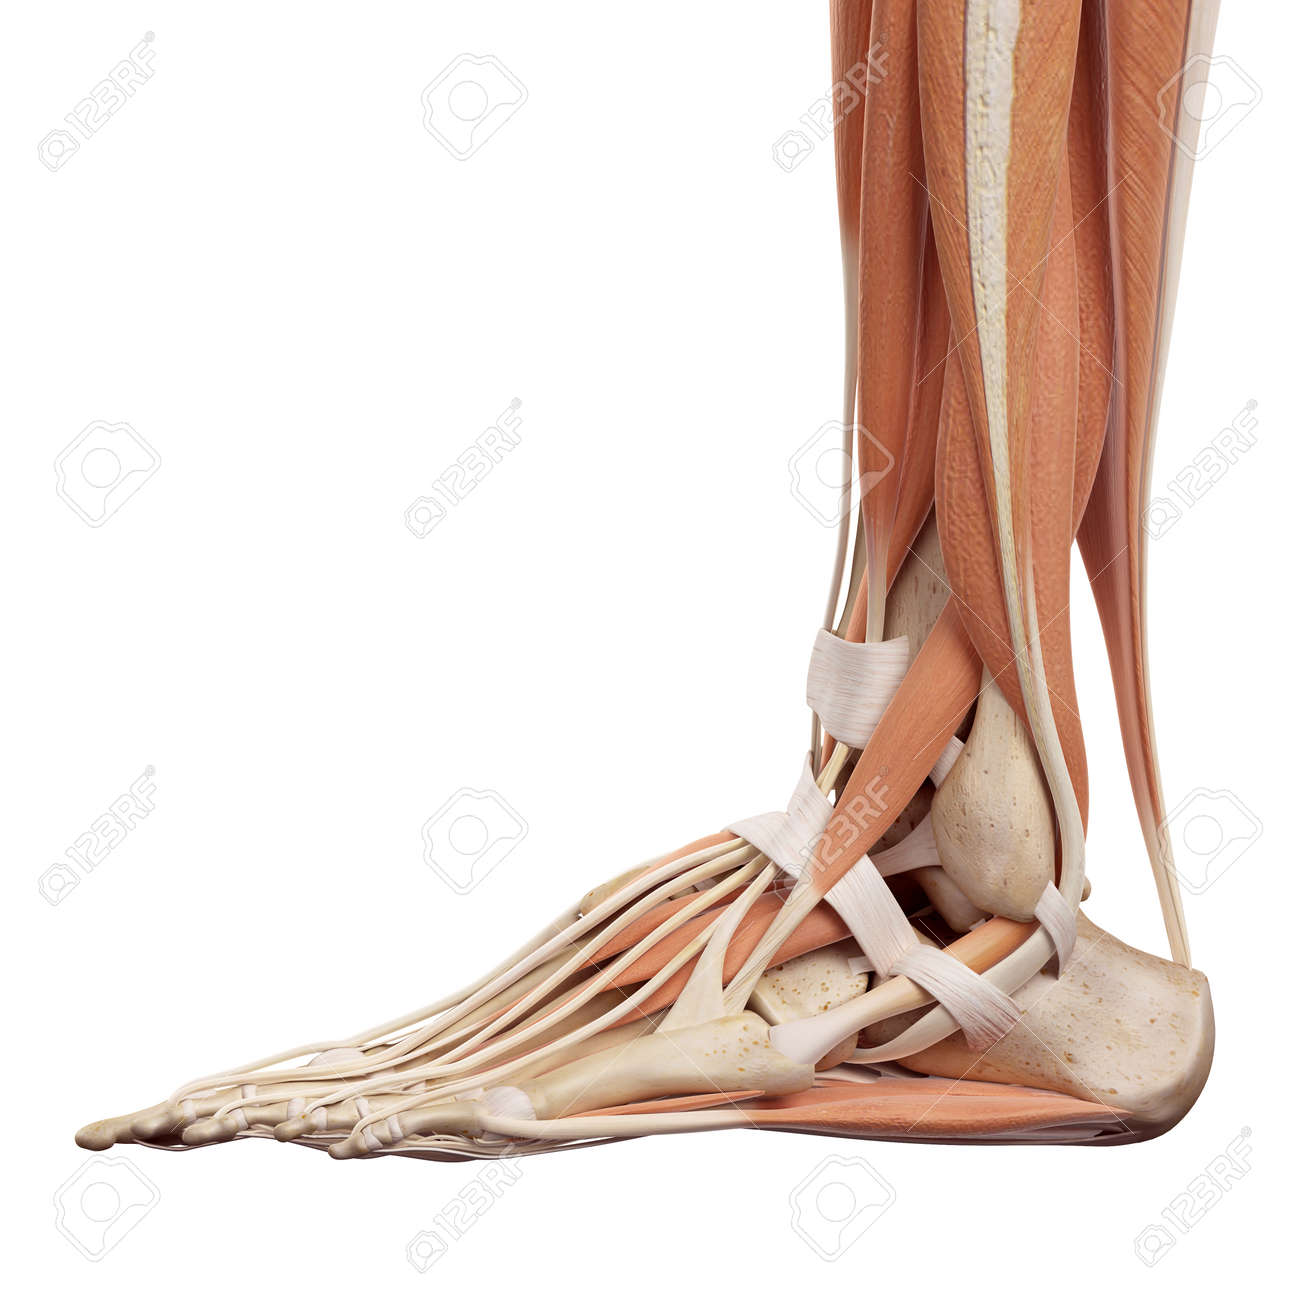 Medical Accurate Illustration Of The Foot Muscles Stock Photo ...